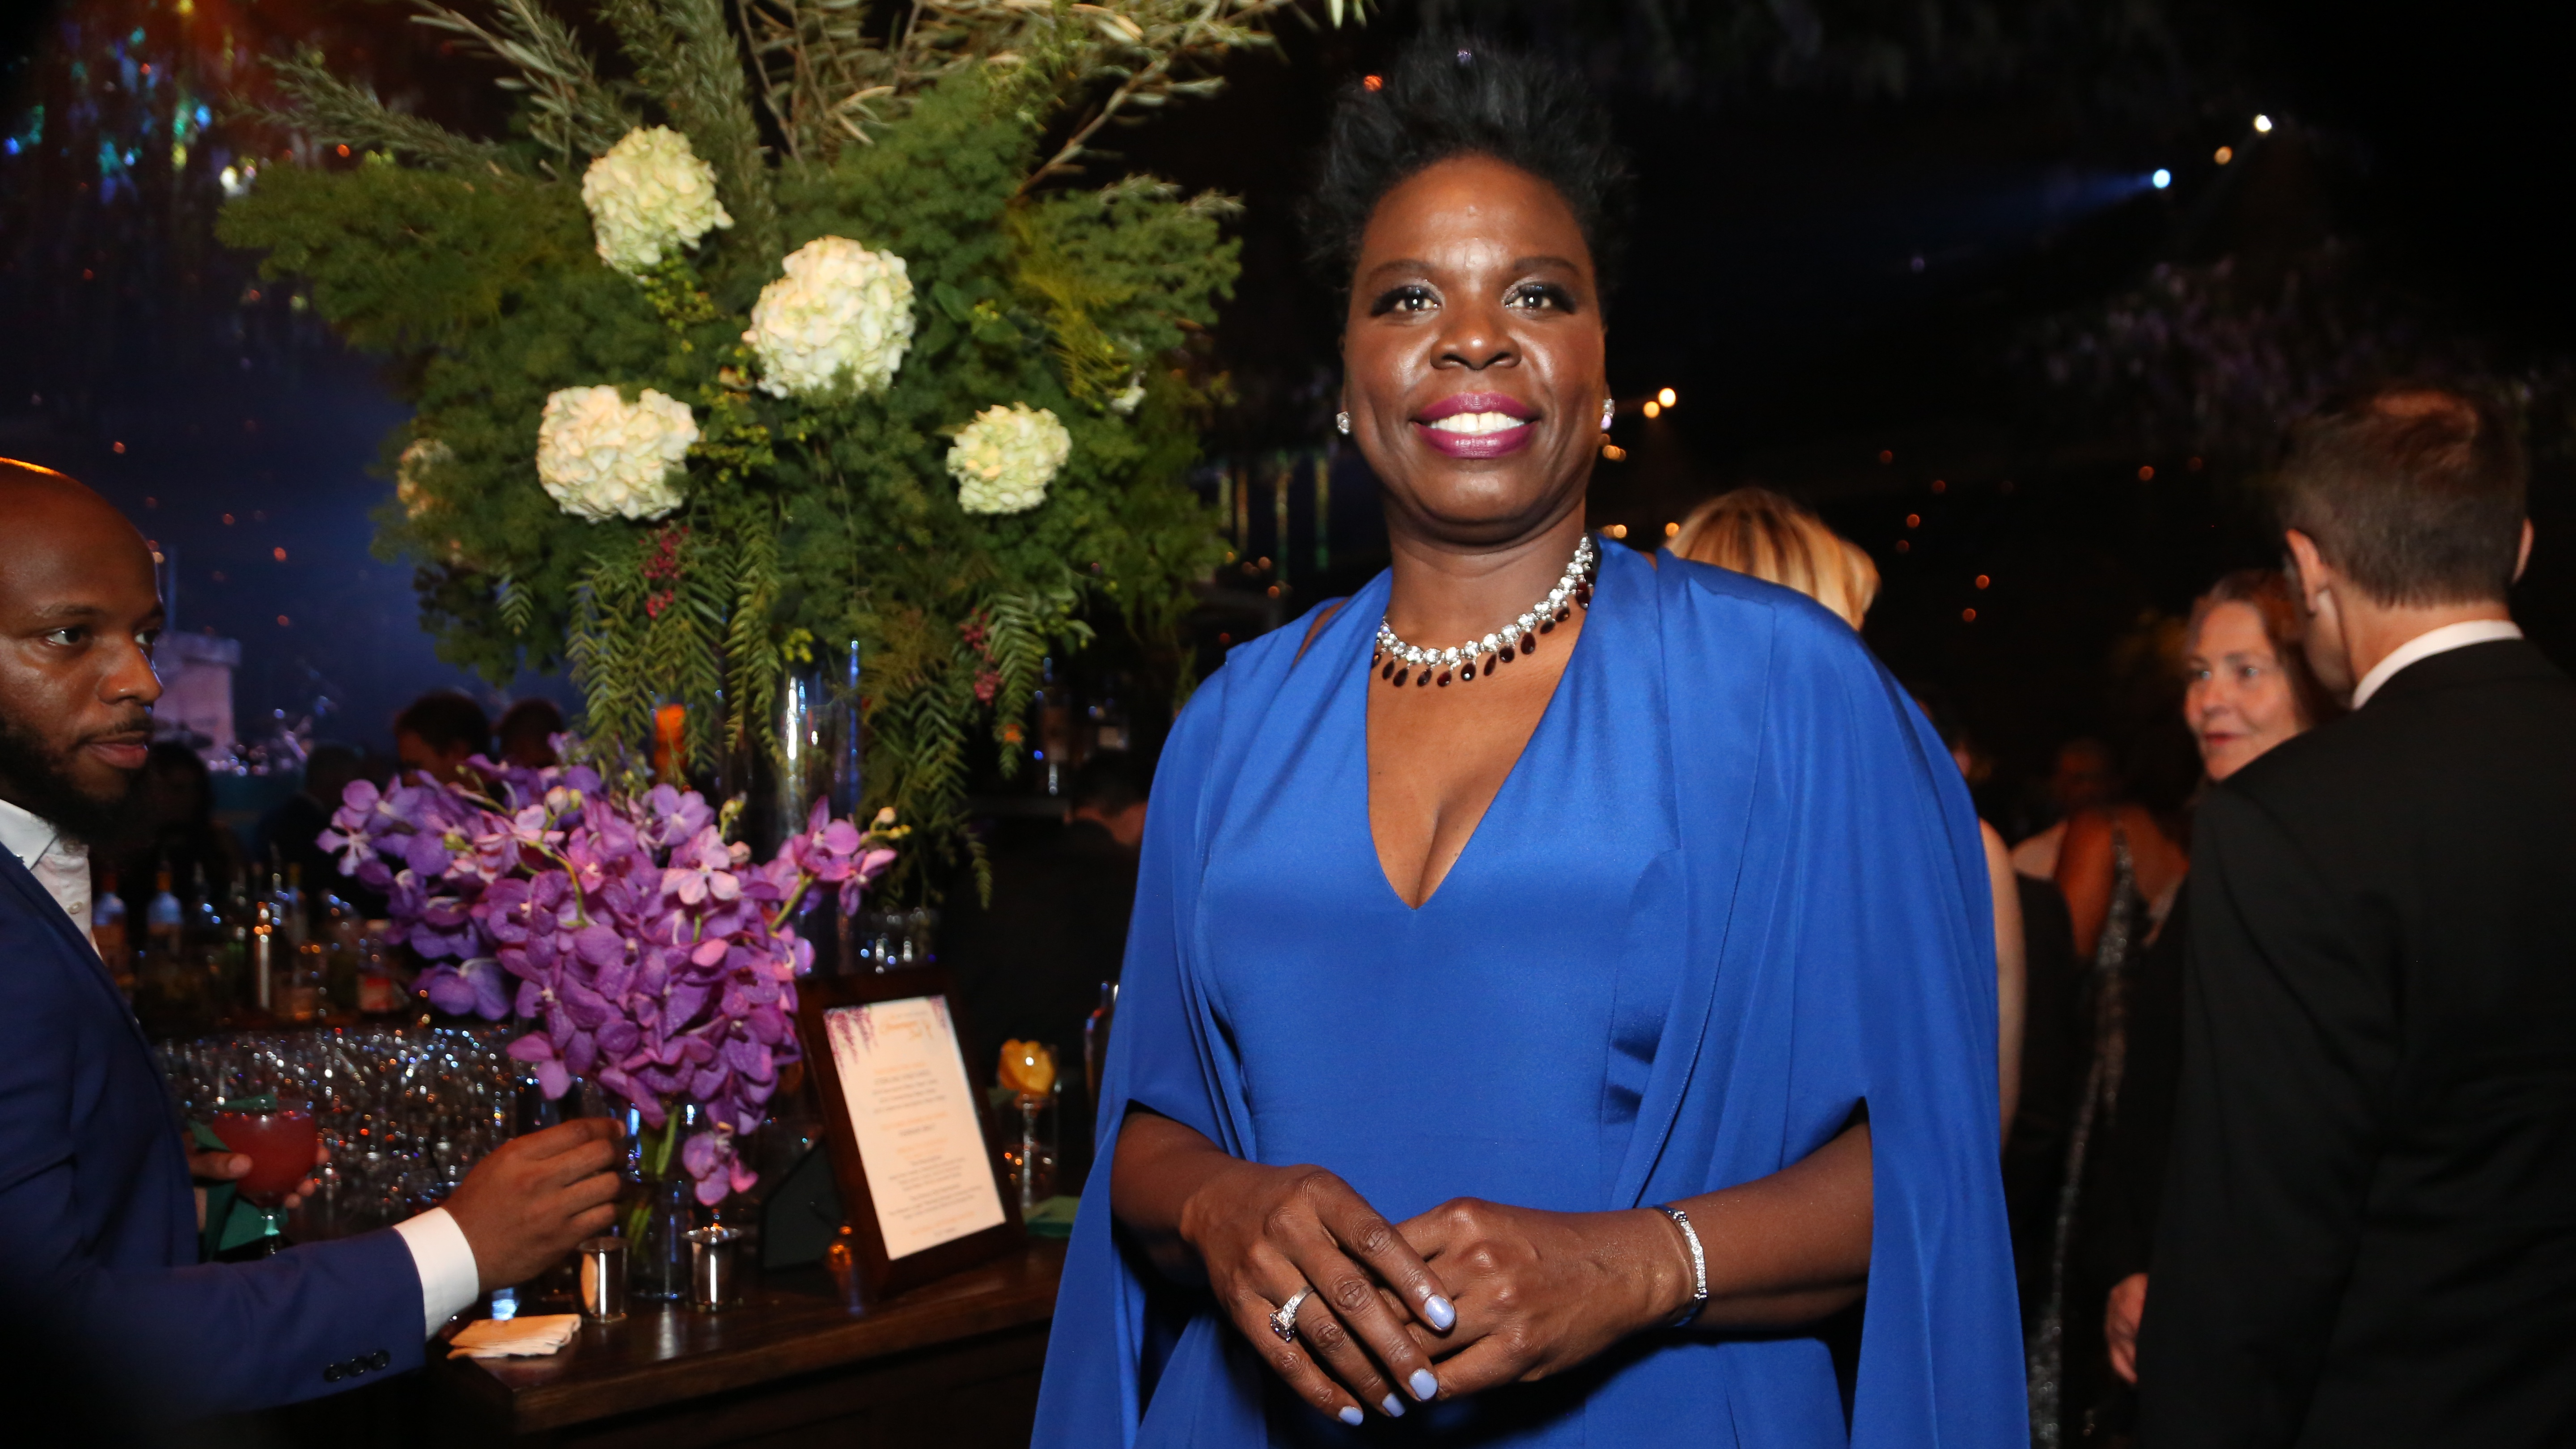 Leslie Jones at the 68th Primetime Emmy Awards Governors Ball with drinks by World Class™ on Sunday, September 18, 2016 at the Los Angeles Convention Center in Los Angeles. (Photo by Rich Fury/Invision for World Class/AP Images).